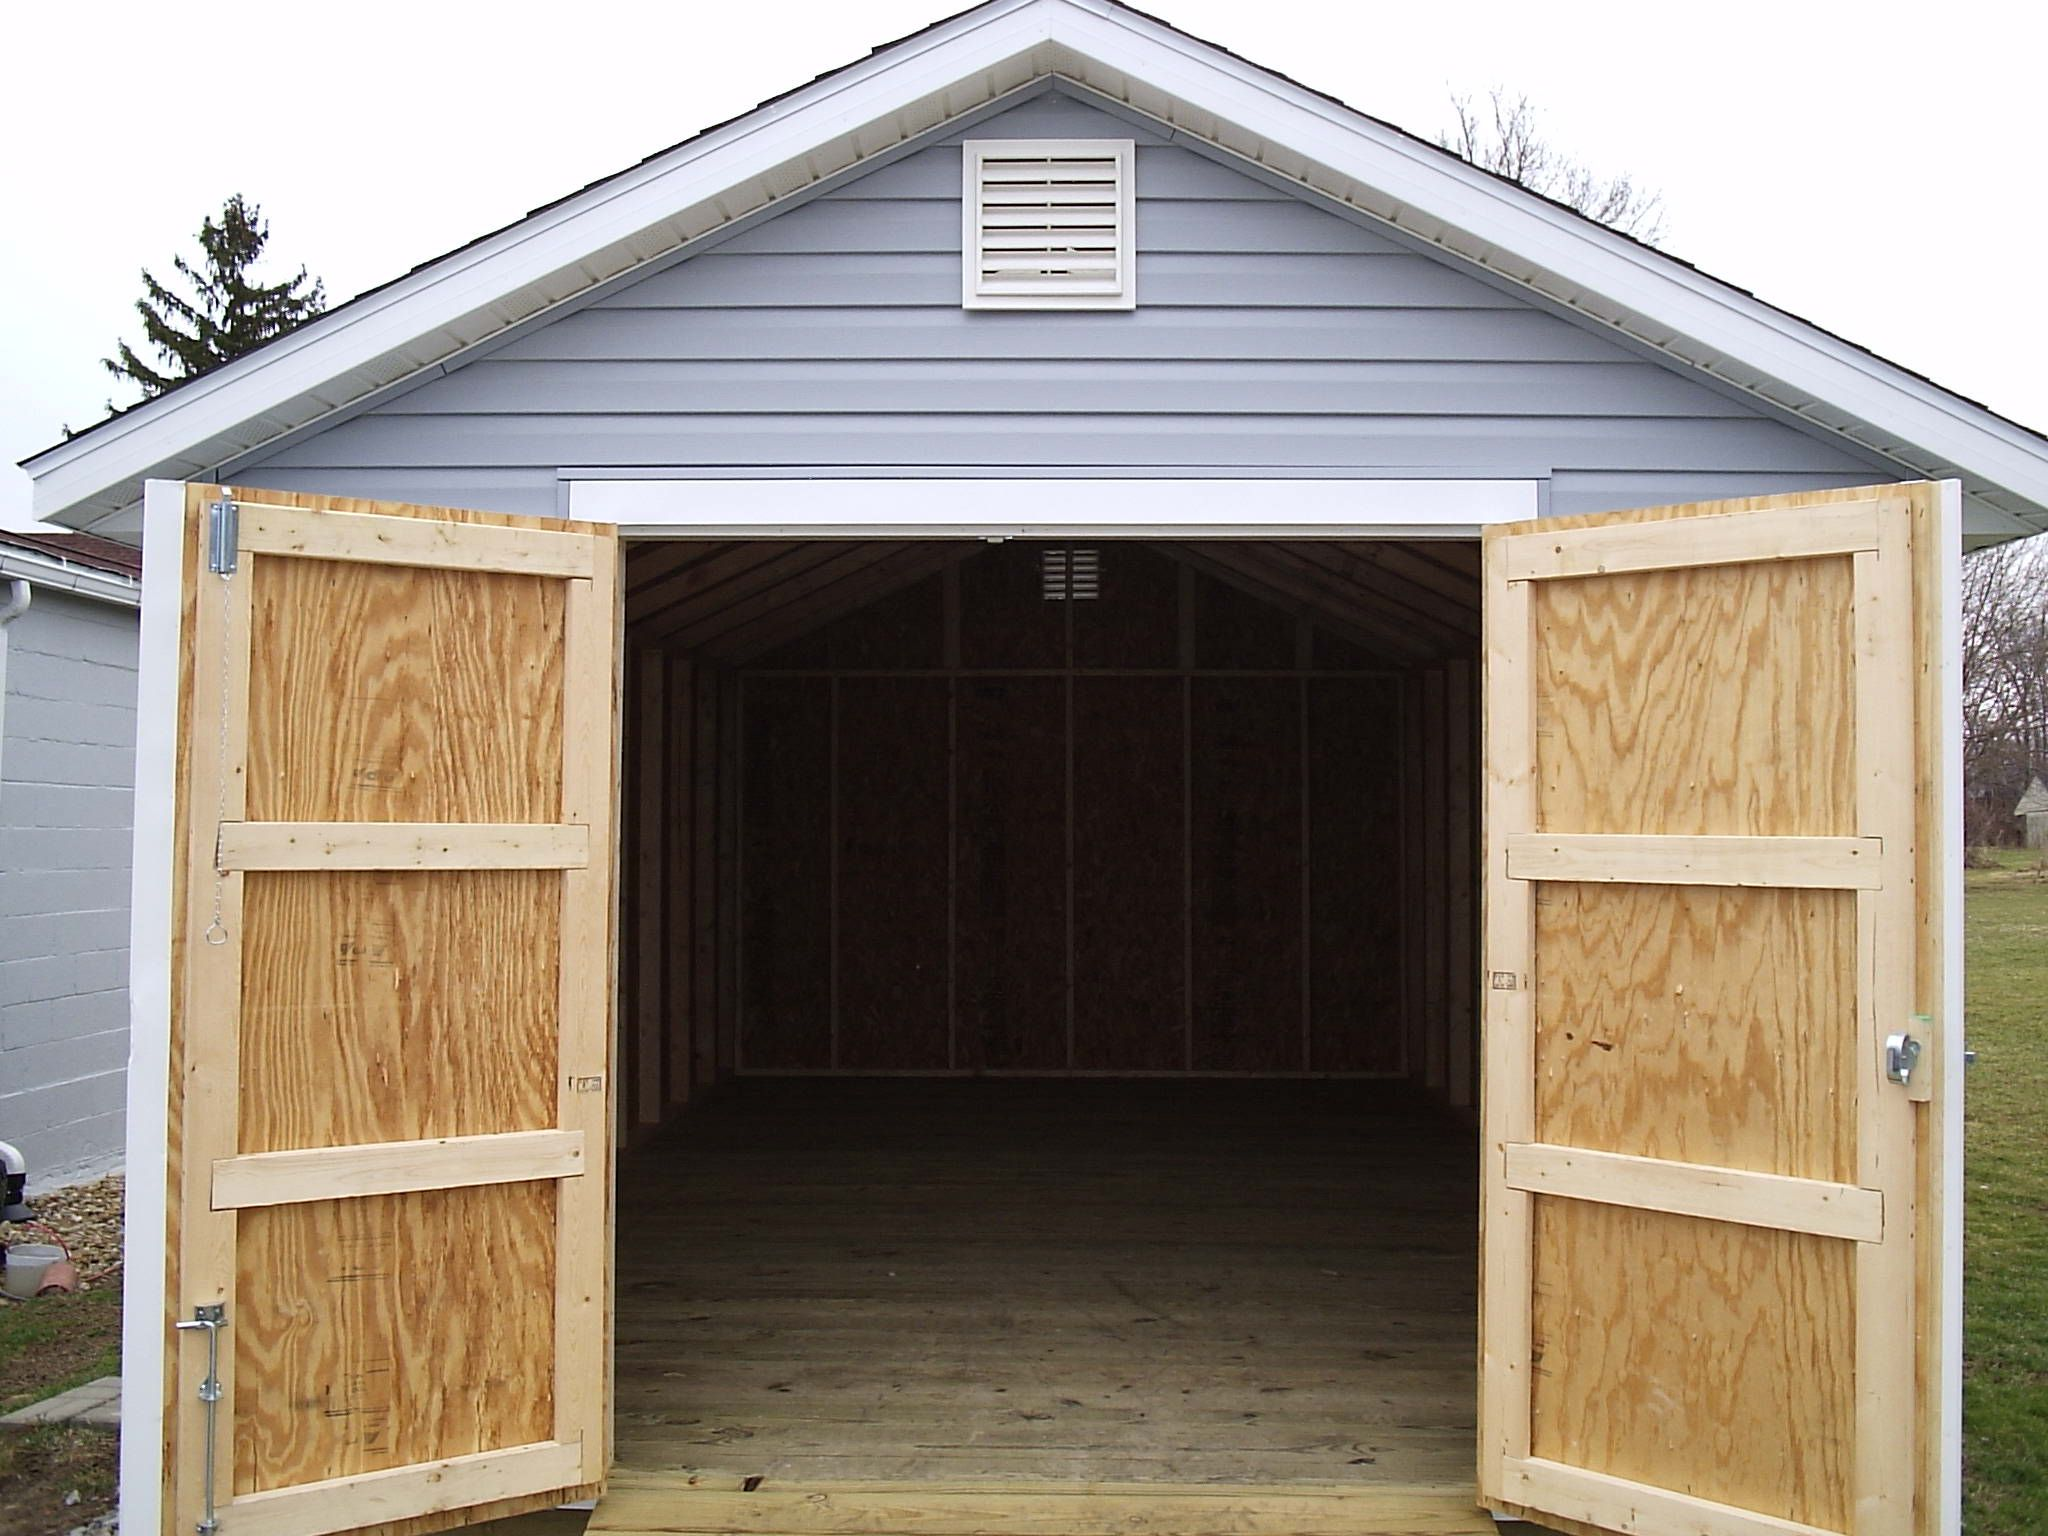 Shed doors deere shed pinterest doors storage and Large garage door sizes